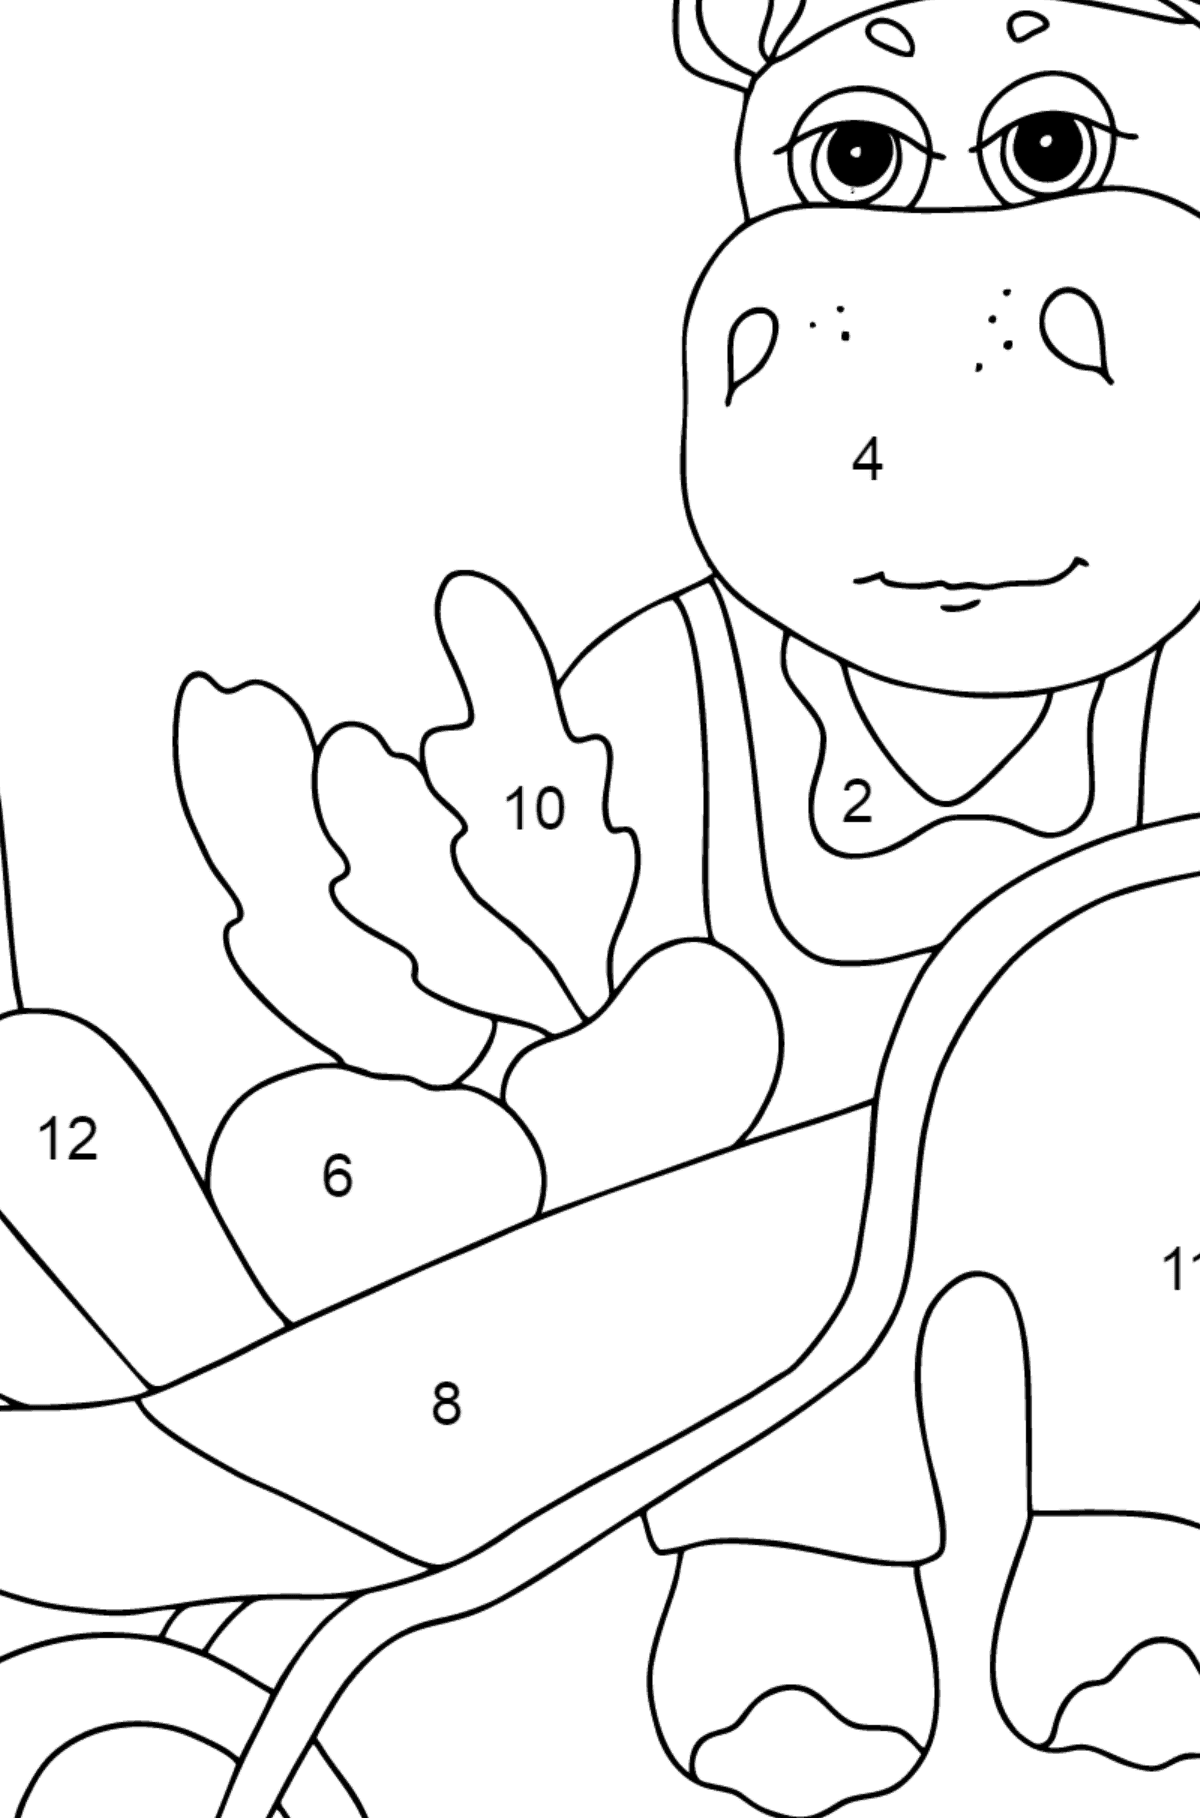 Coloring Page - A Hippo with a Cart for Kids  - Color by Number